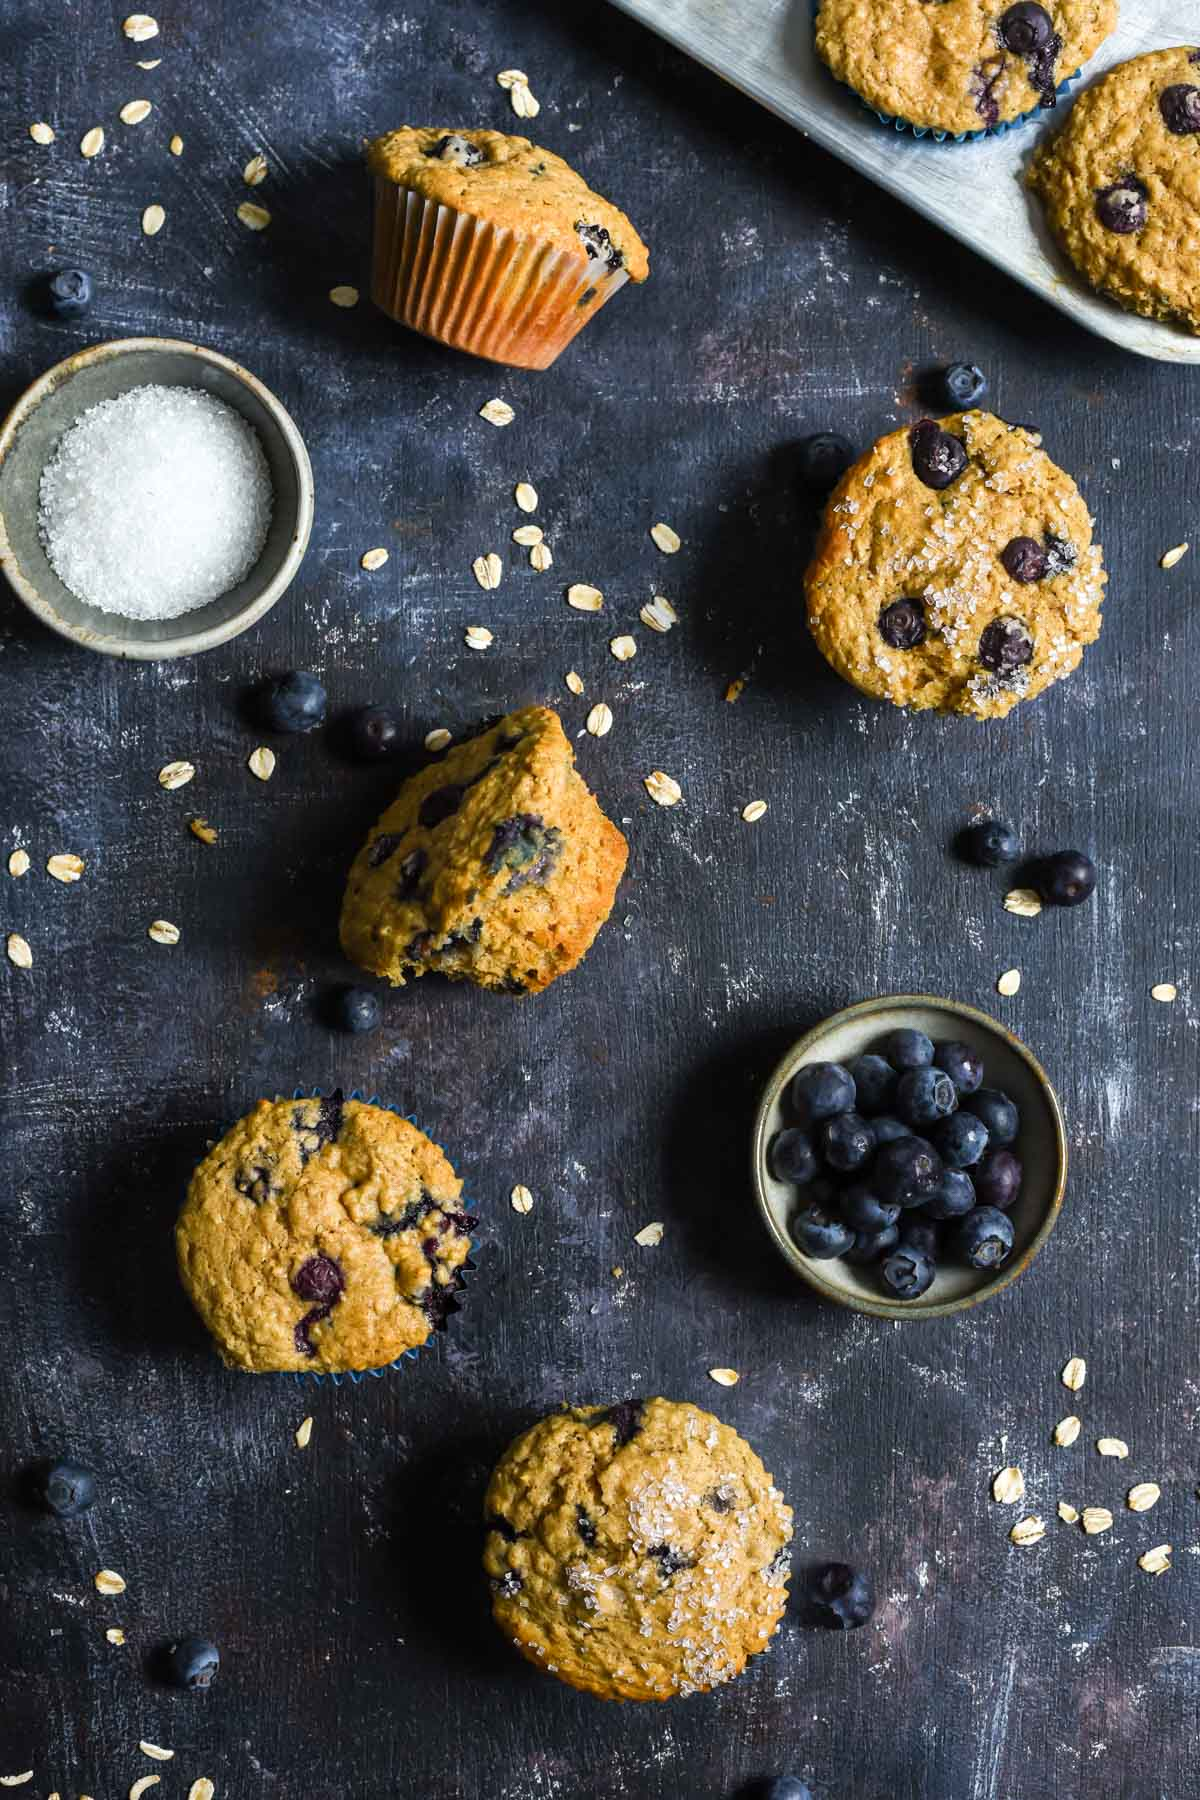 These hearty Blueberry Oatmeal Muffins are bursting with fresh blueberries. They're a wonderful way to start your day!